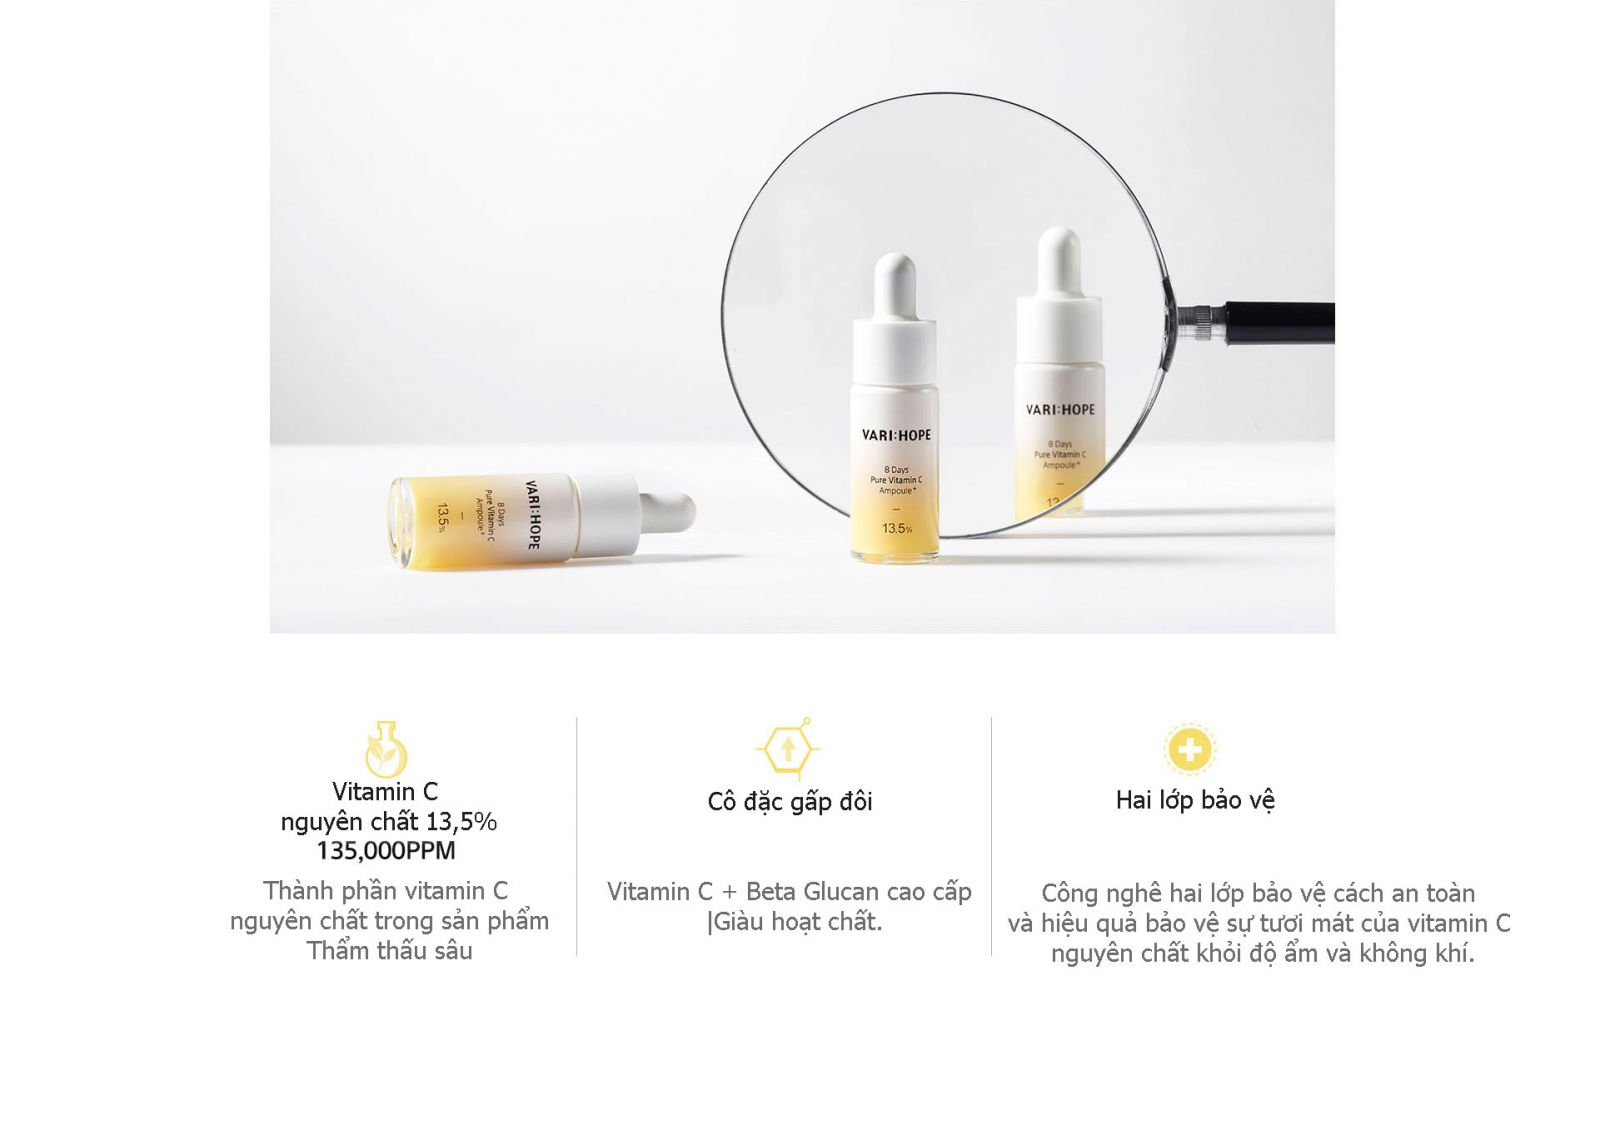 vari hope 8 days review, review serum varihope, serum varihope 8 days có tốt không, serum vari hope 8 days có tốt không, vari:hope, vari hope 8 days, review vari hope, vari hope 8 days giá bao nhiều, vari:hope vitamin c, vari hope 8 day, vari hope 8 days giá, serum vari hope vitamin c, serum vari hope 8 days, serum trị thâm vari hope 8 days, serum vari hope 8 days giá, serum vari hope giá bao nhiêu, serum vitamin c vari hope, vari hope vitamin c review, vari hope 8 days, review varihope, serum vari hope, vari hope review, varihope, serum varihope, varihope 8 days, vari hope, serum varihope 8 days, varihope 8 day, review serum vari hope, vitamin c vari hope